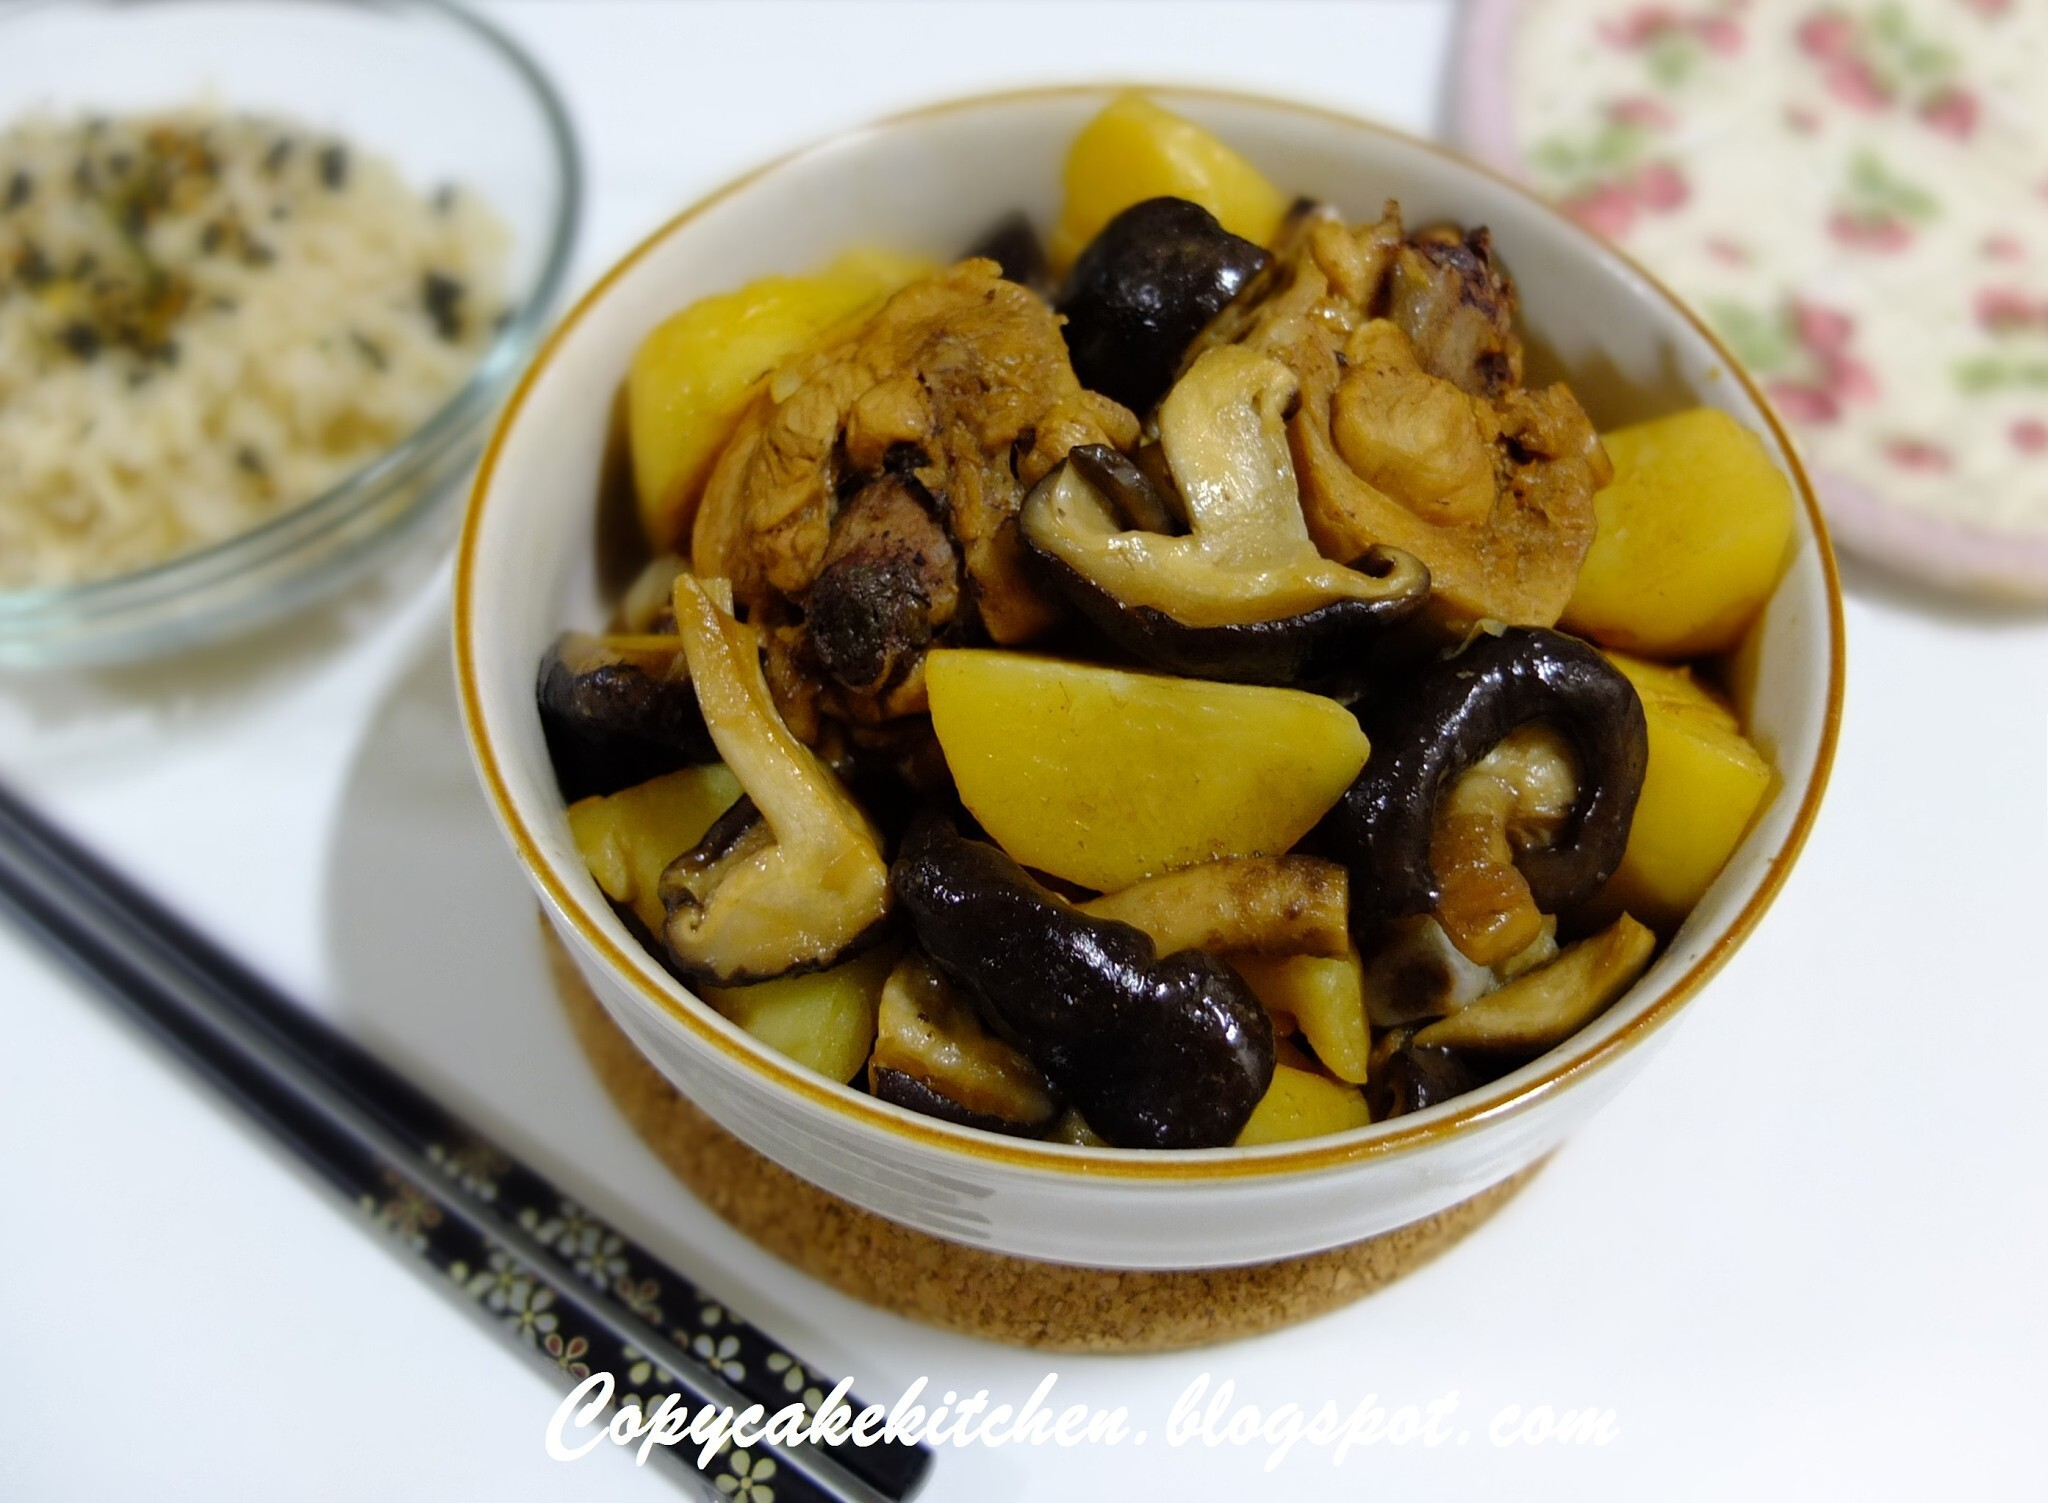 Chicken with Mushrooms & Potatoes (香菇马铃薯焖鸡)